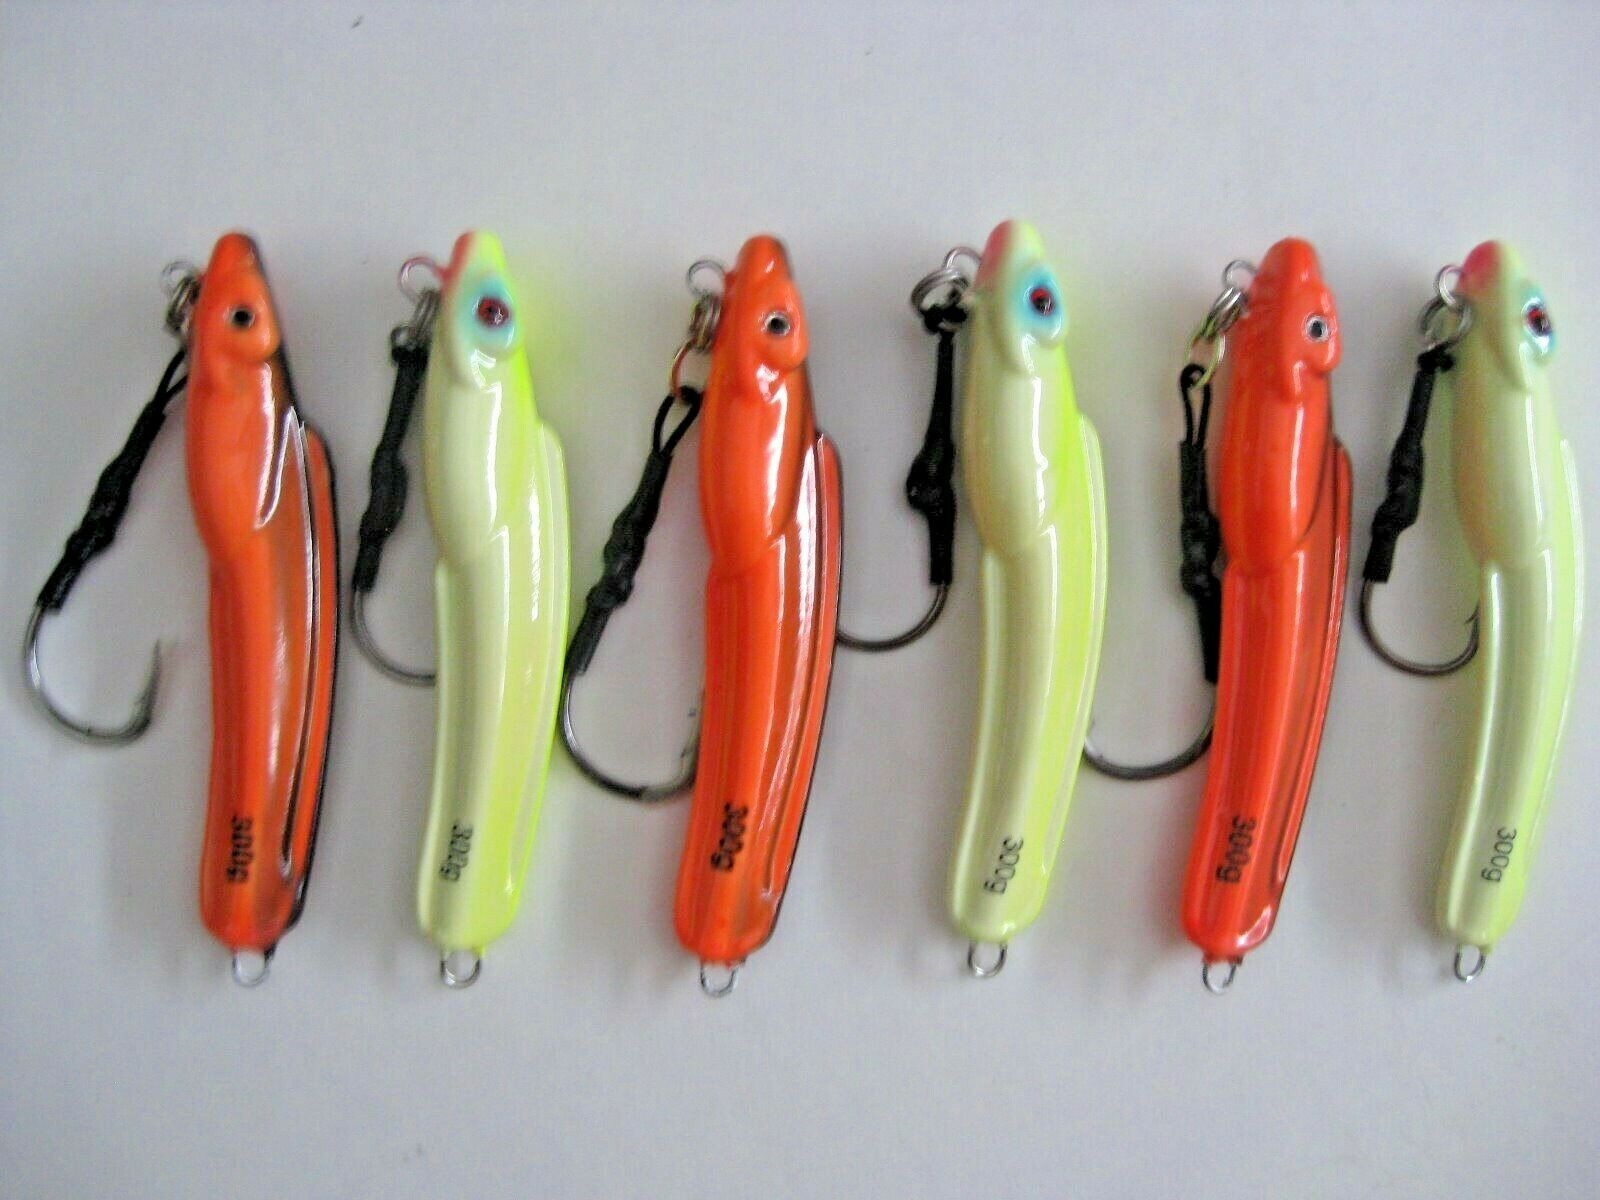 LOT  6  greenICAL EEL JIGS 10oz  300g JIG SPEED JIGGING SALTWATER  AJ's